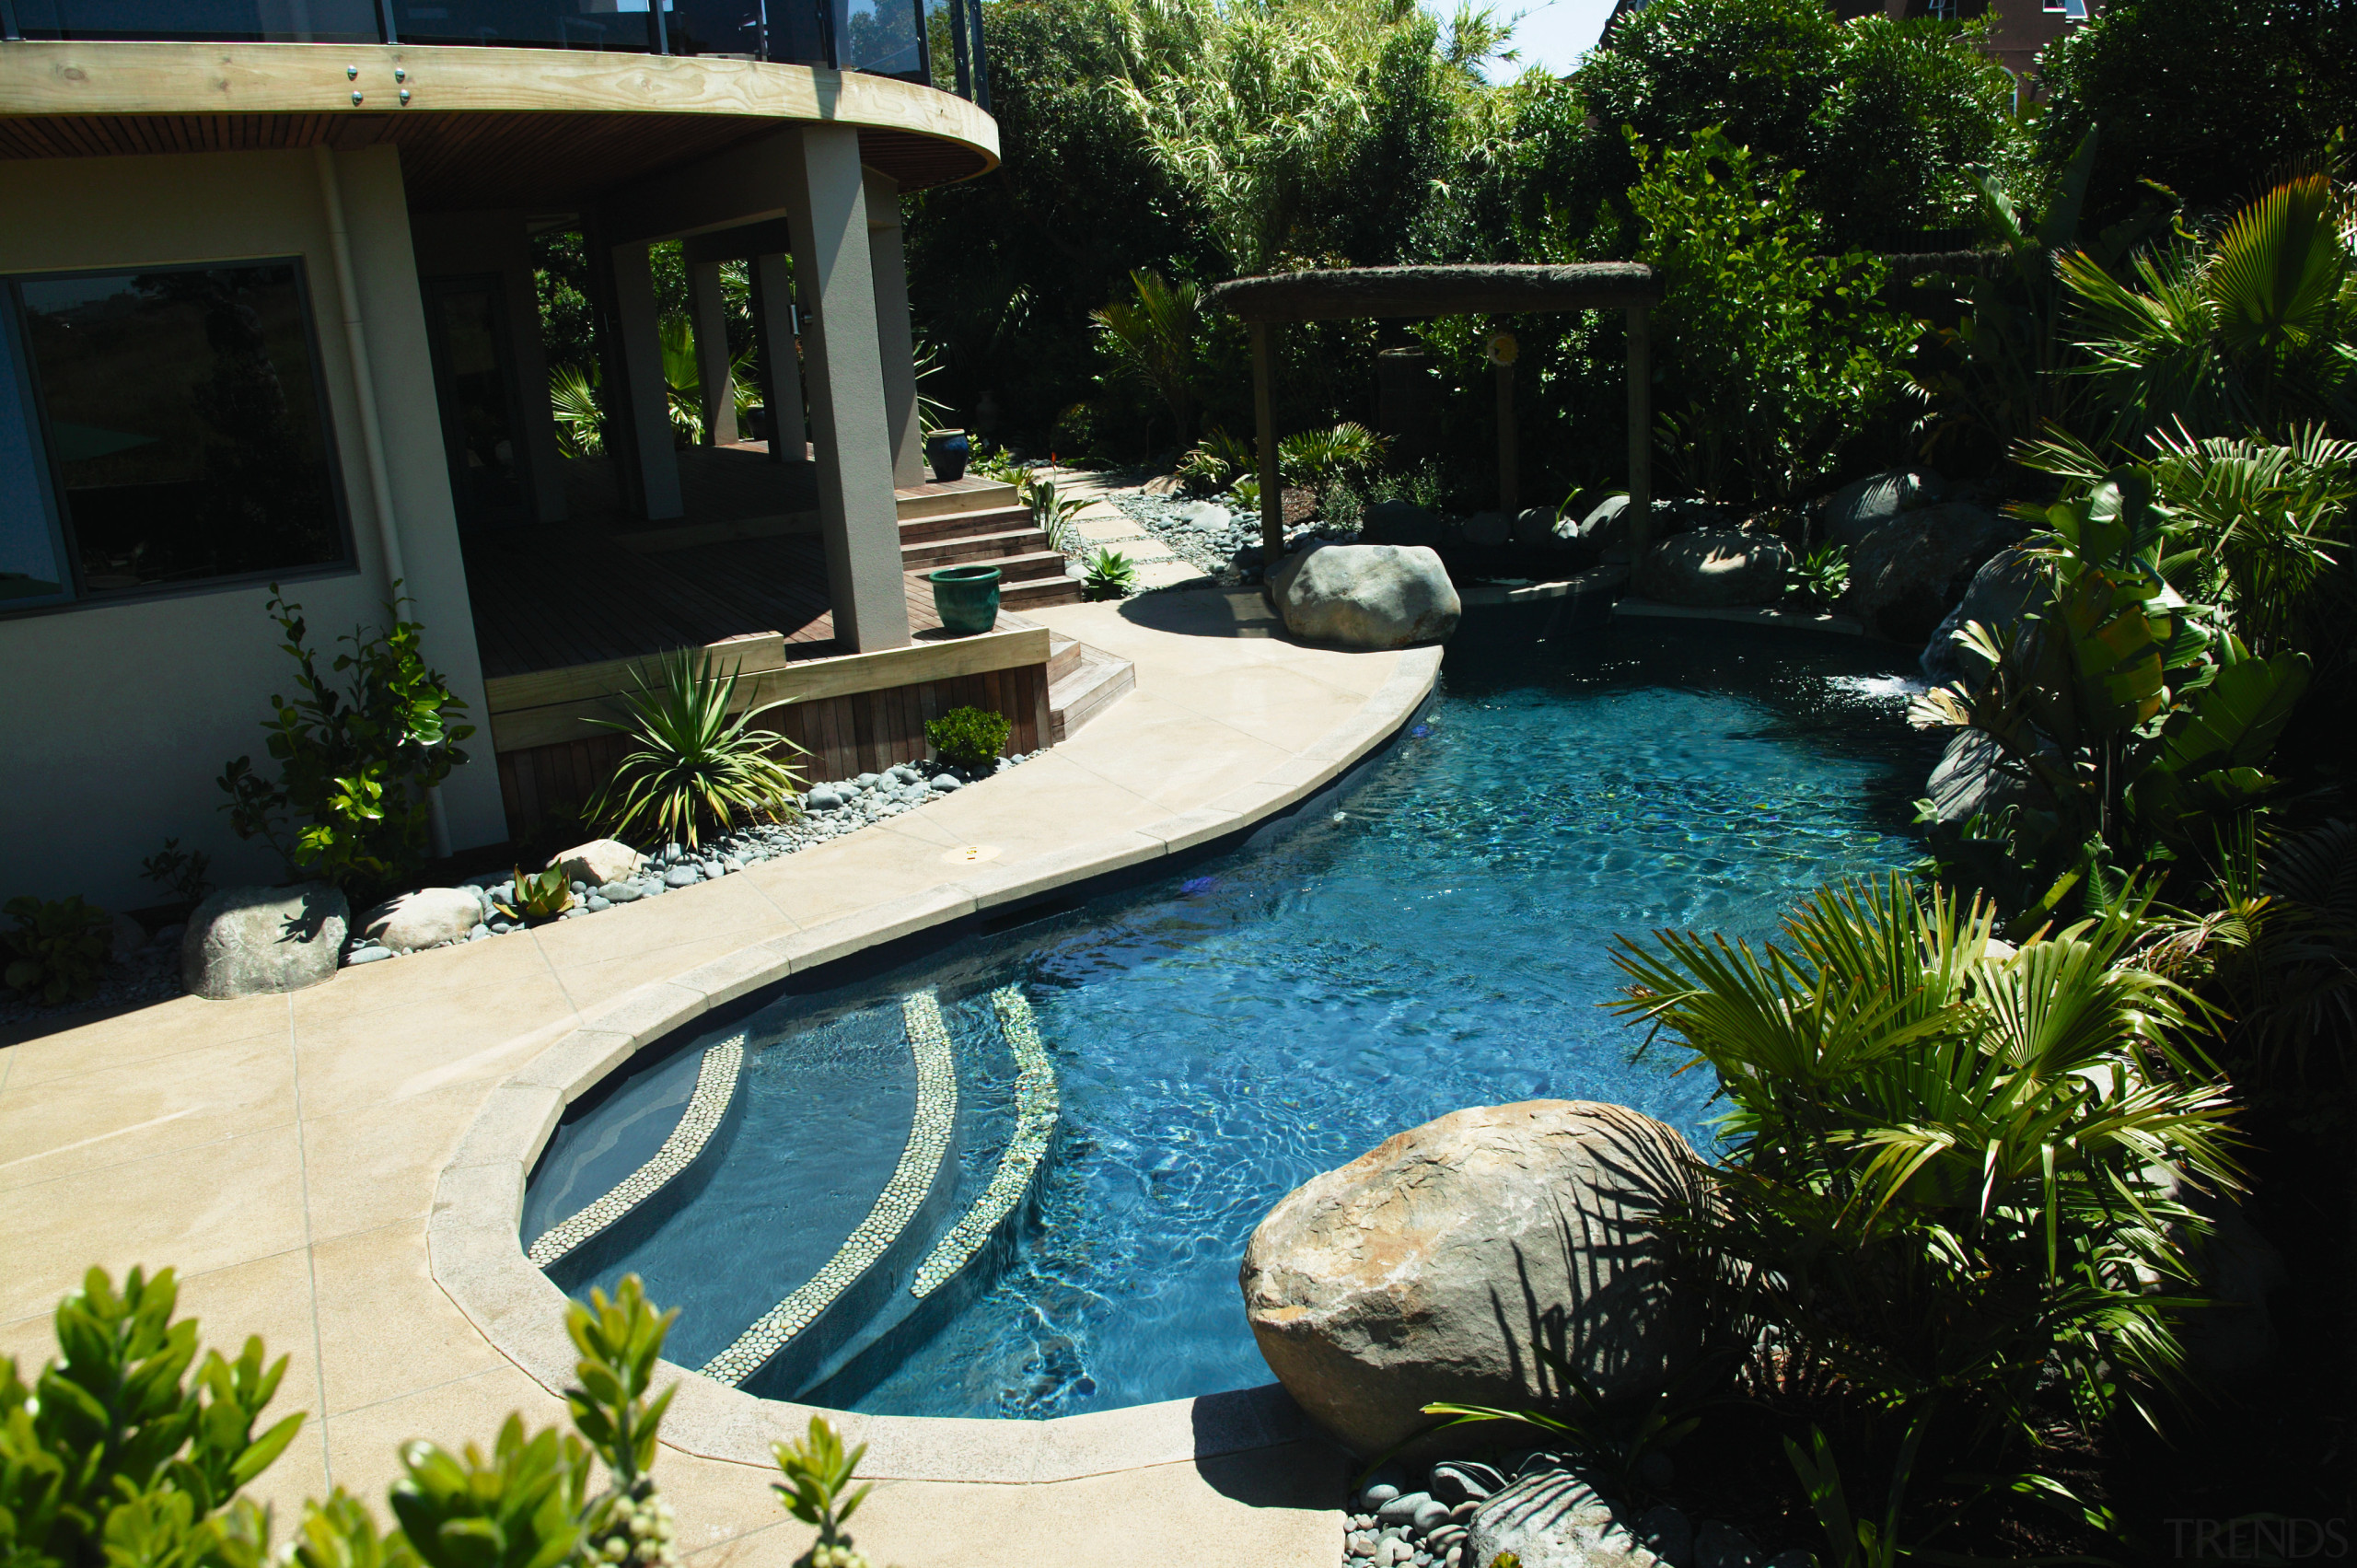 Landscaped swimming pool area with paving, boulders, plants backyard, estate, landscape, landscaping, leisure, outdoor structure, plant, property, real estate, resort, swimming pool, water, water feature, yard, black